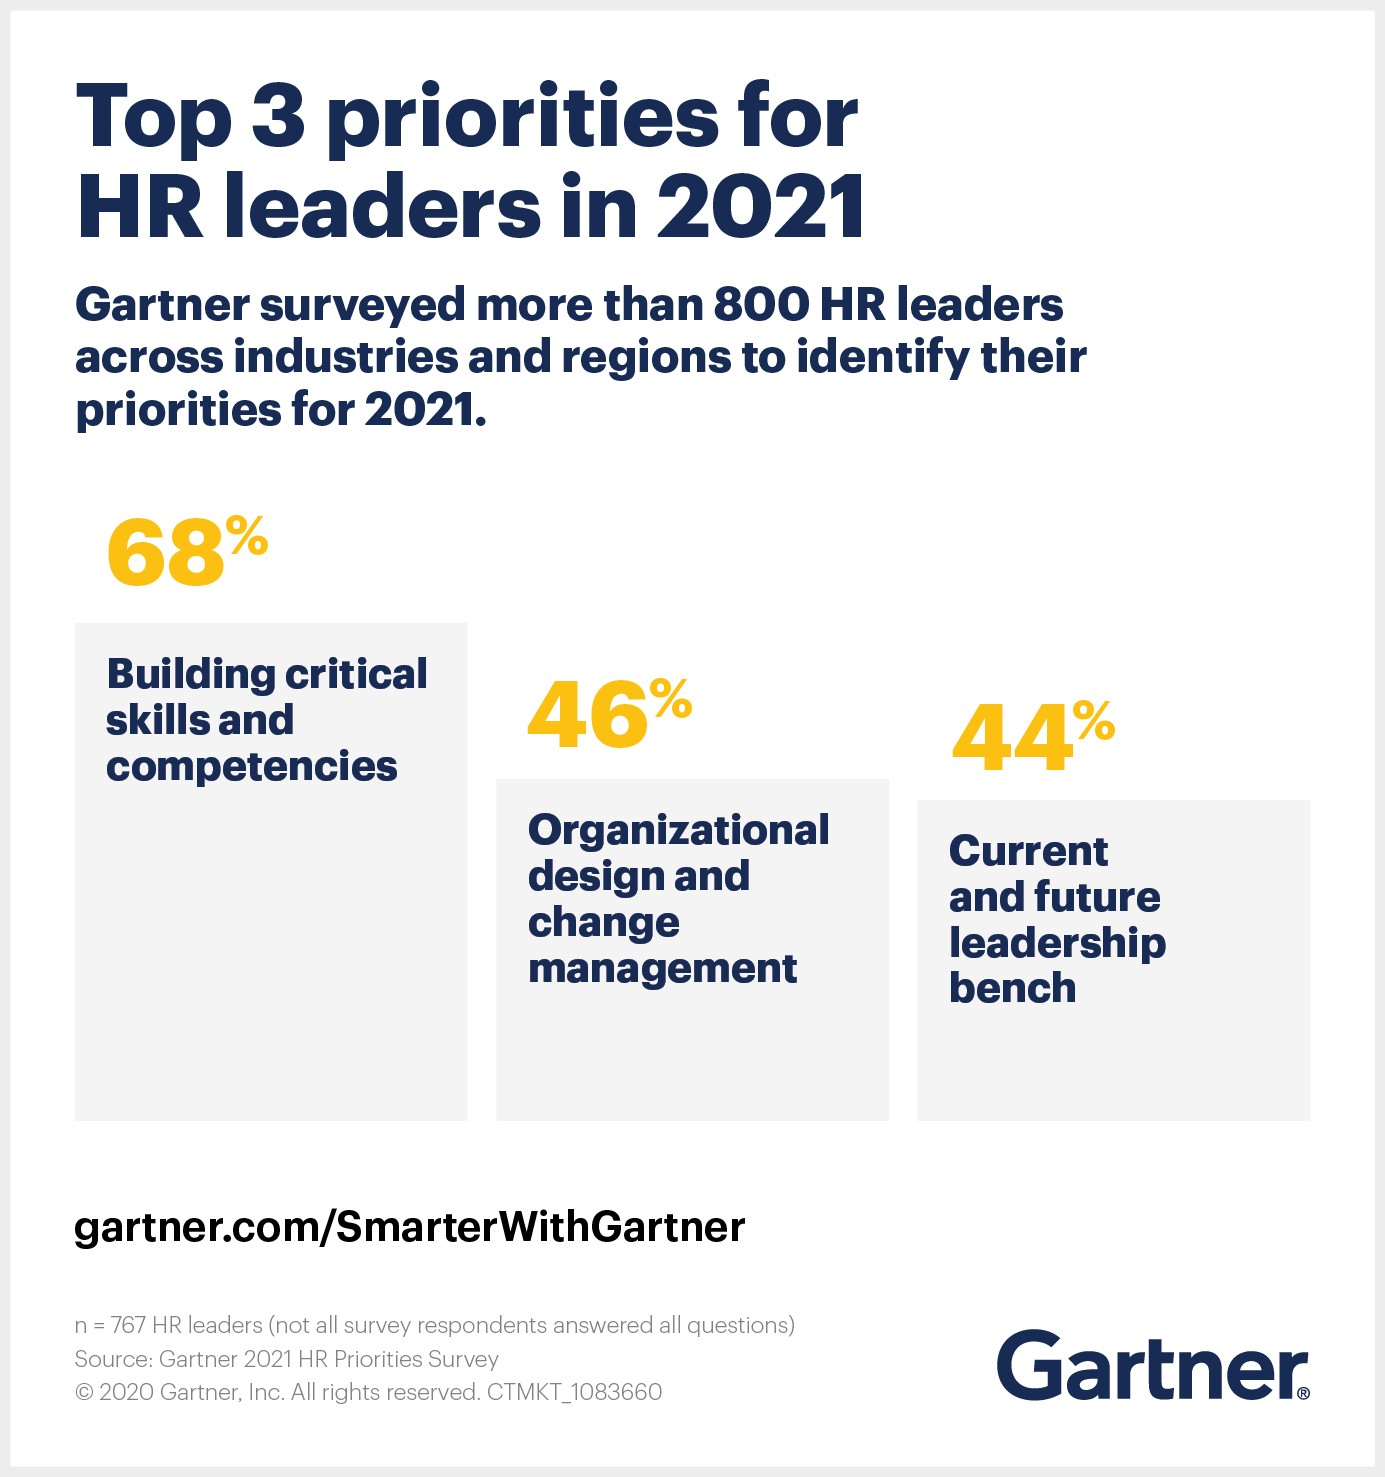 Gartner surveyed more than 800 HR leaders in late-2020 about their priorities for 2021. Building critical skills and competencies topped the list.